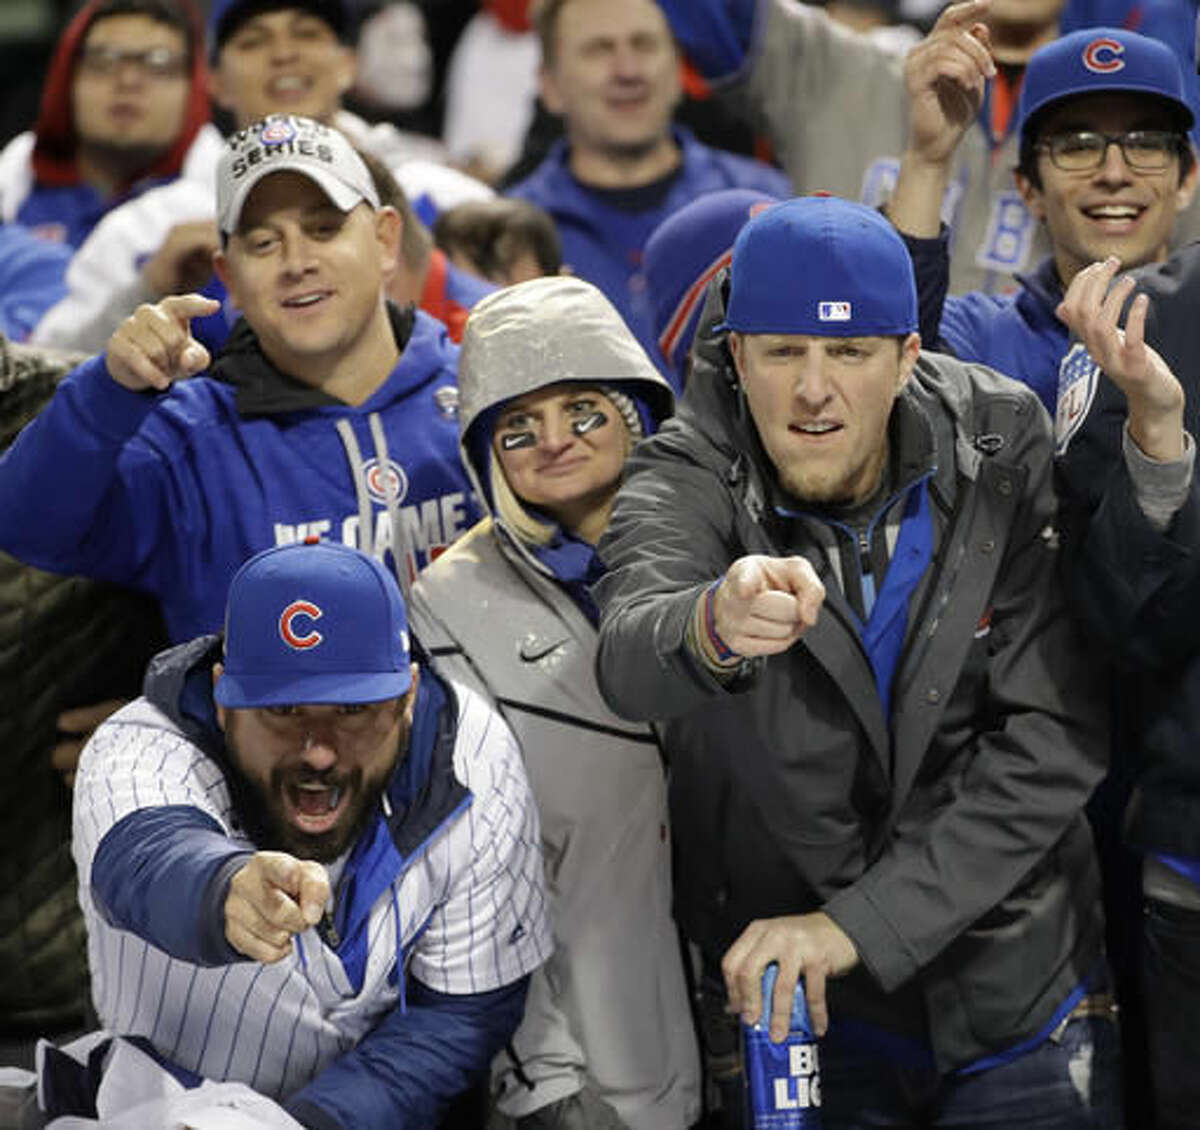 Chicago Cubs fans celebrate at Progressive Field after Game 2 of the Major League Baseball World Series against the Cleveland Indians Wednesday, Oct. 26, 2016, in Cleveland. The Cubs won 5-1 to tie the series 1-1. (AP Photo/David J. Phillip)